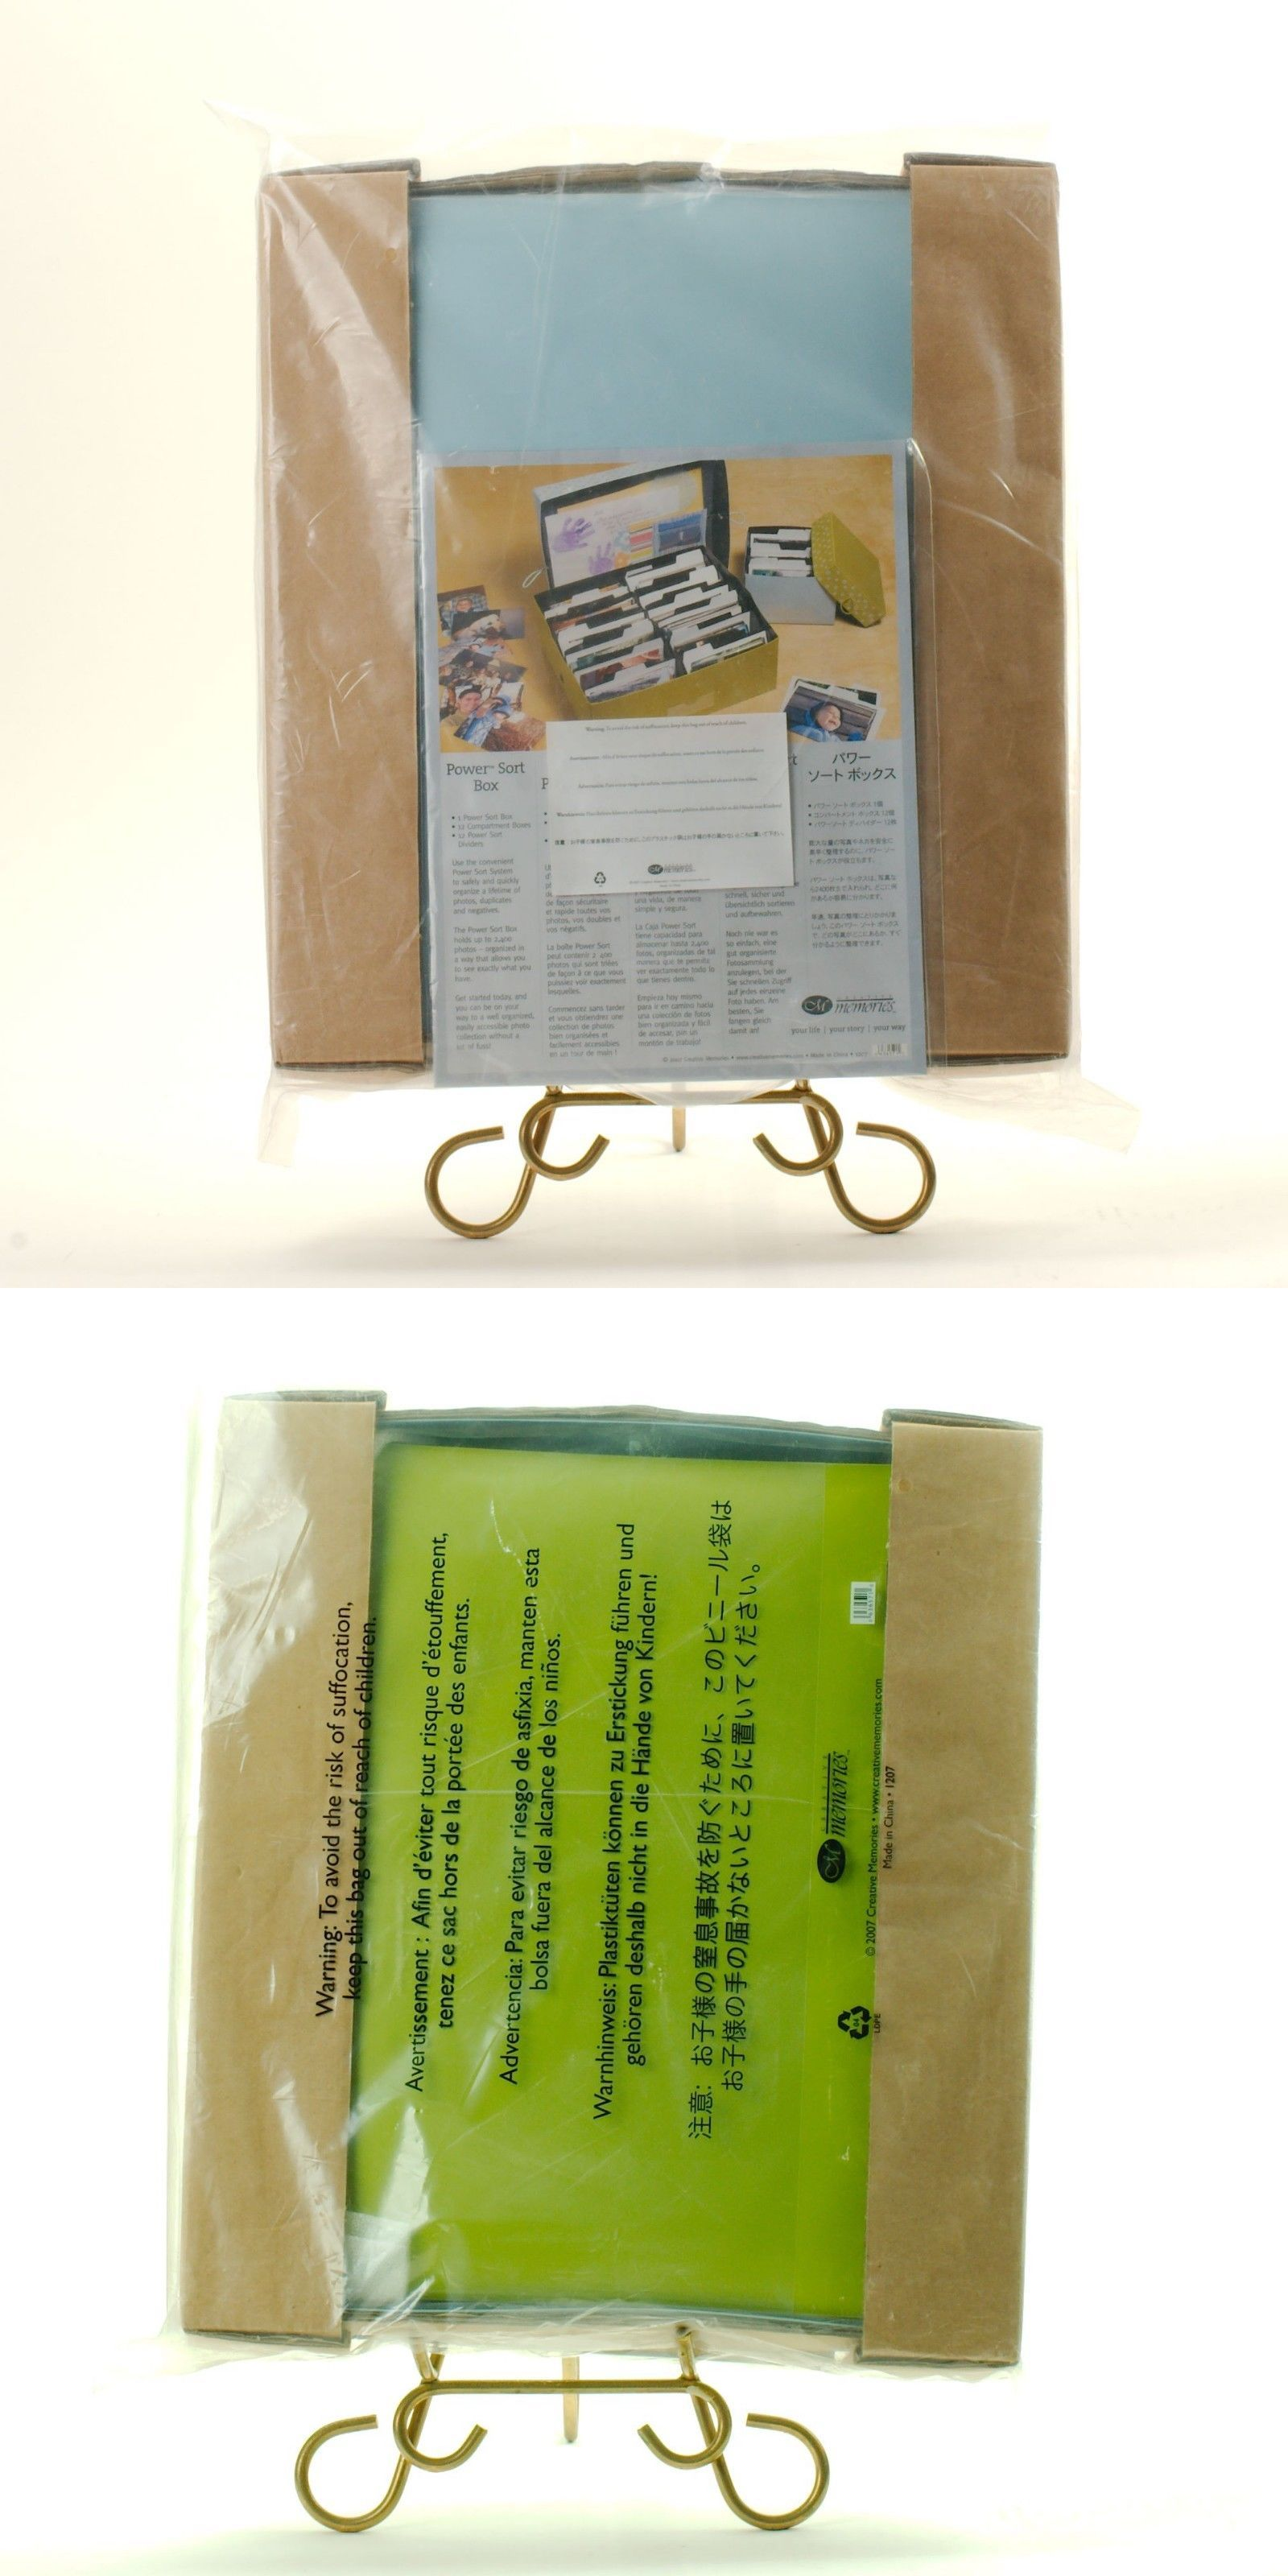 AE31 ~ 200 CLEAR Bags Cellophane ENVELOPES for 8x10 Photos or Prints Storage